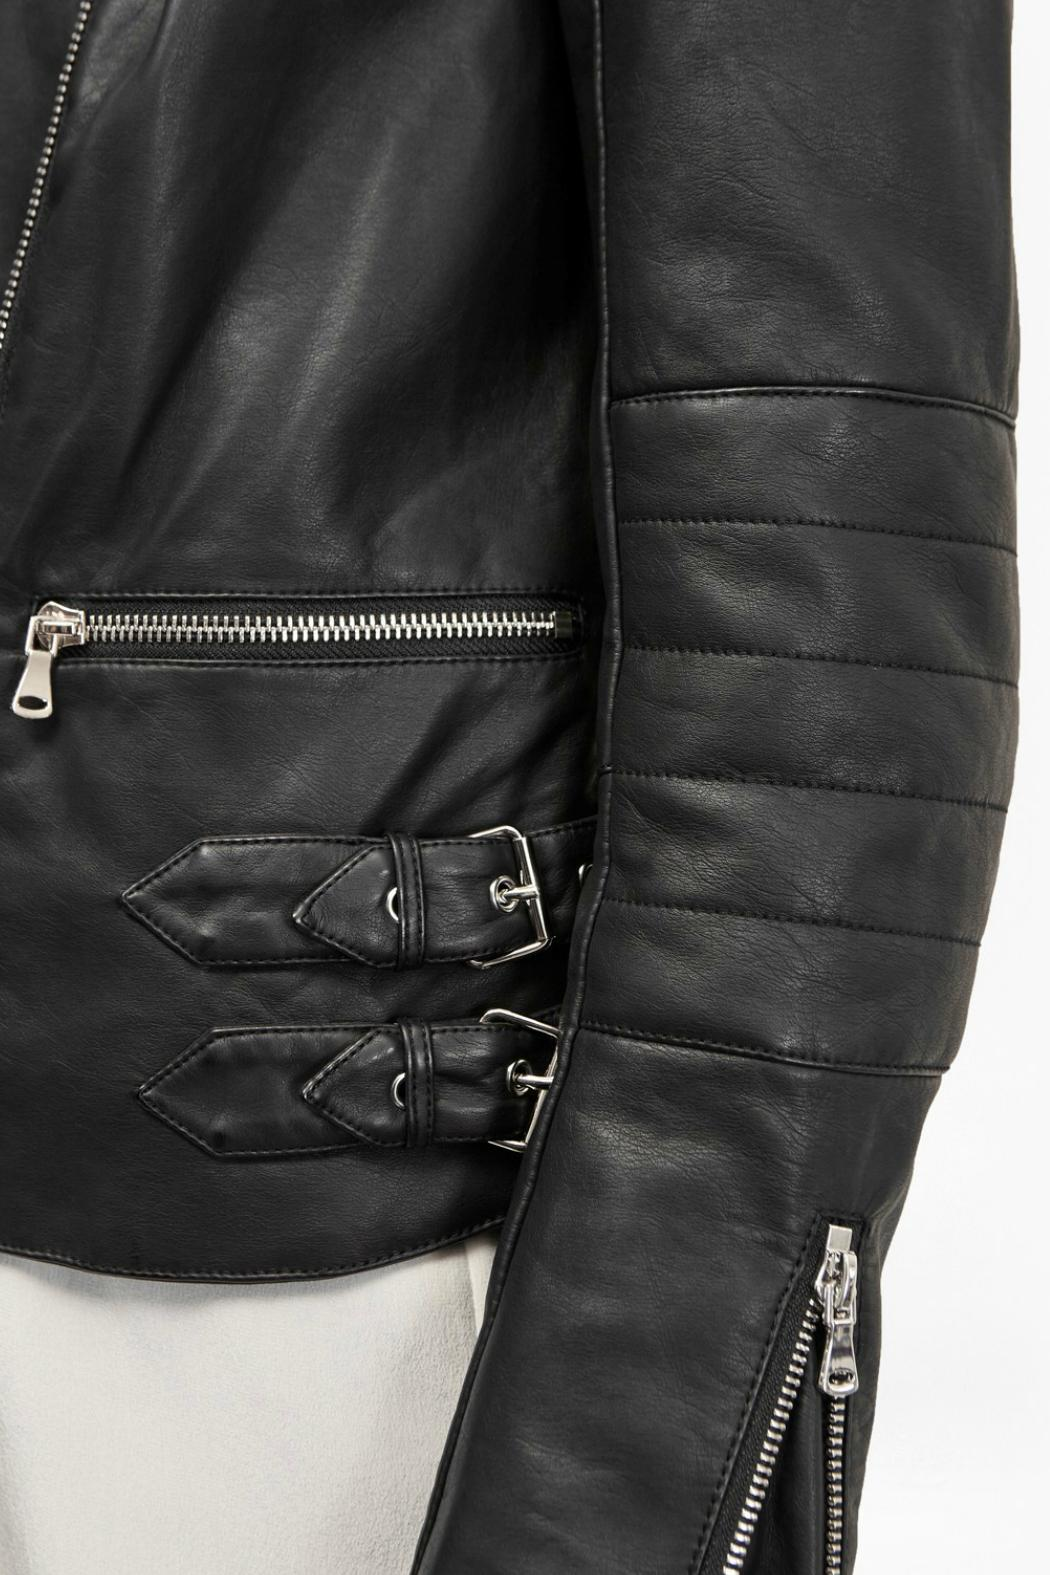 Leather jacket decade - French Connection Decade Jacket Back Cropped Image